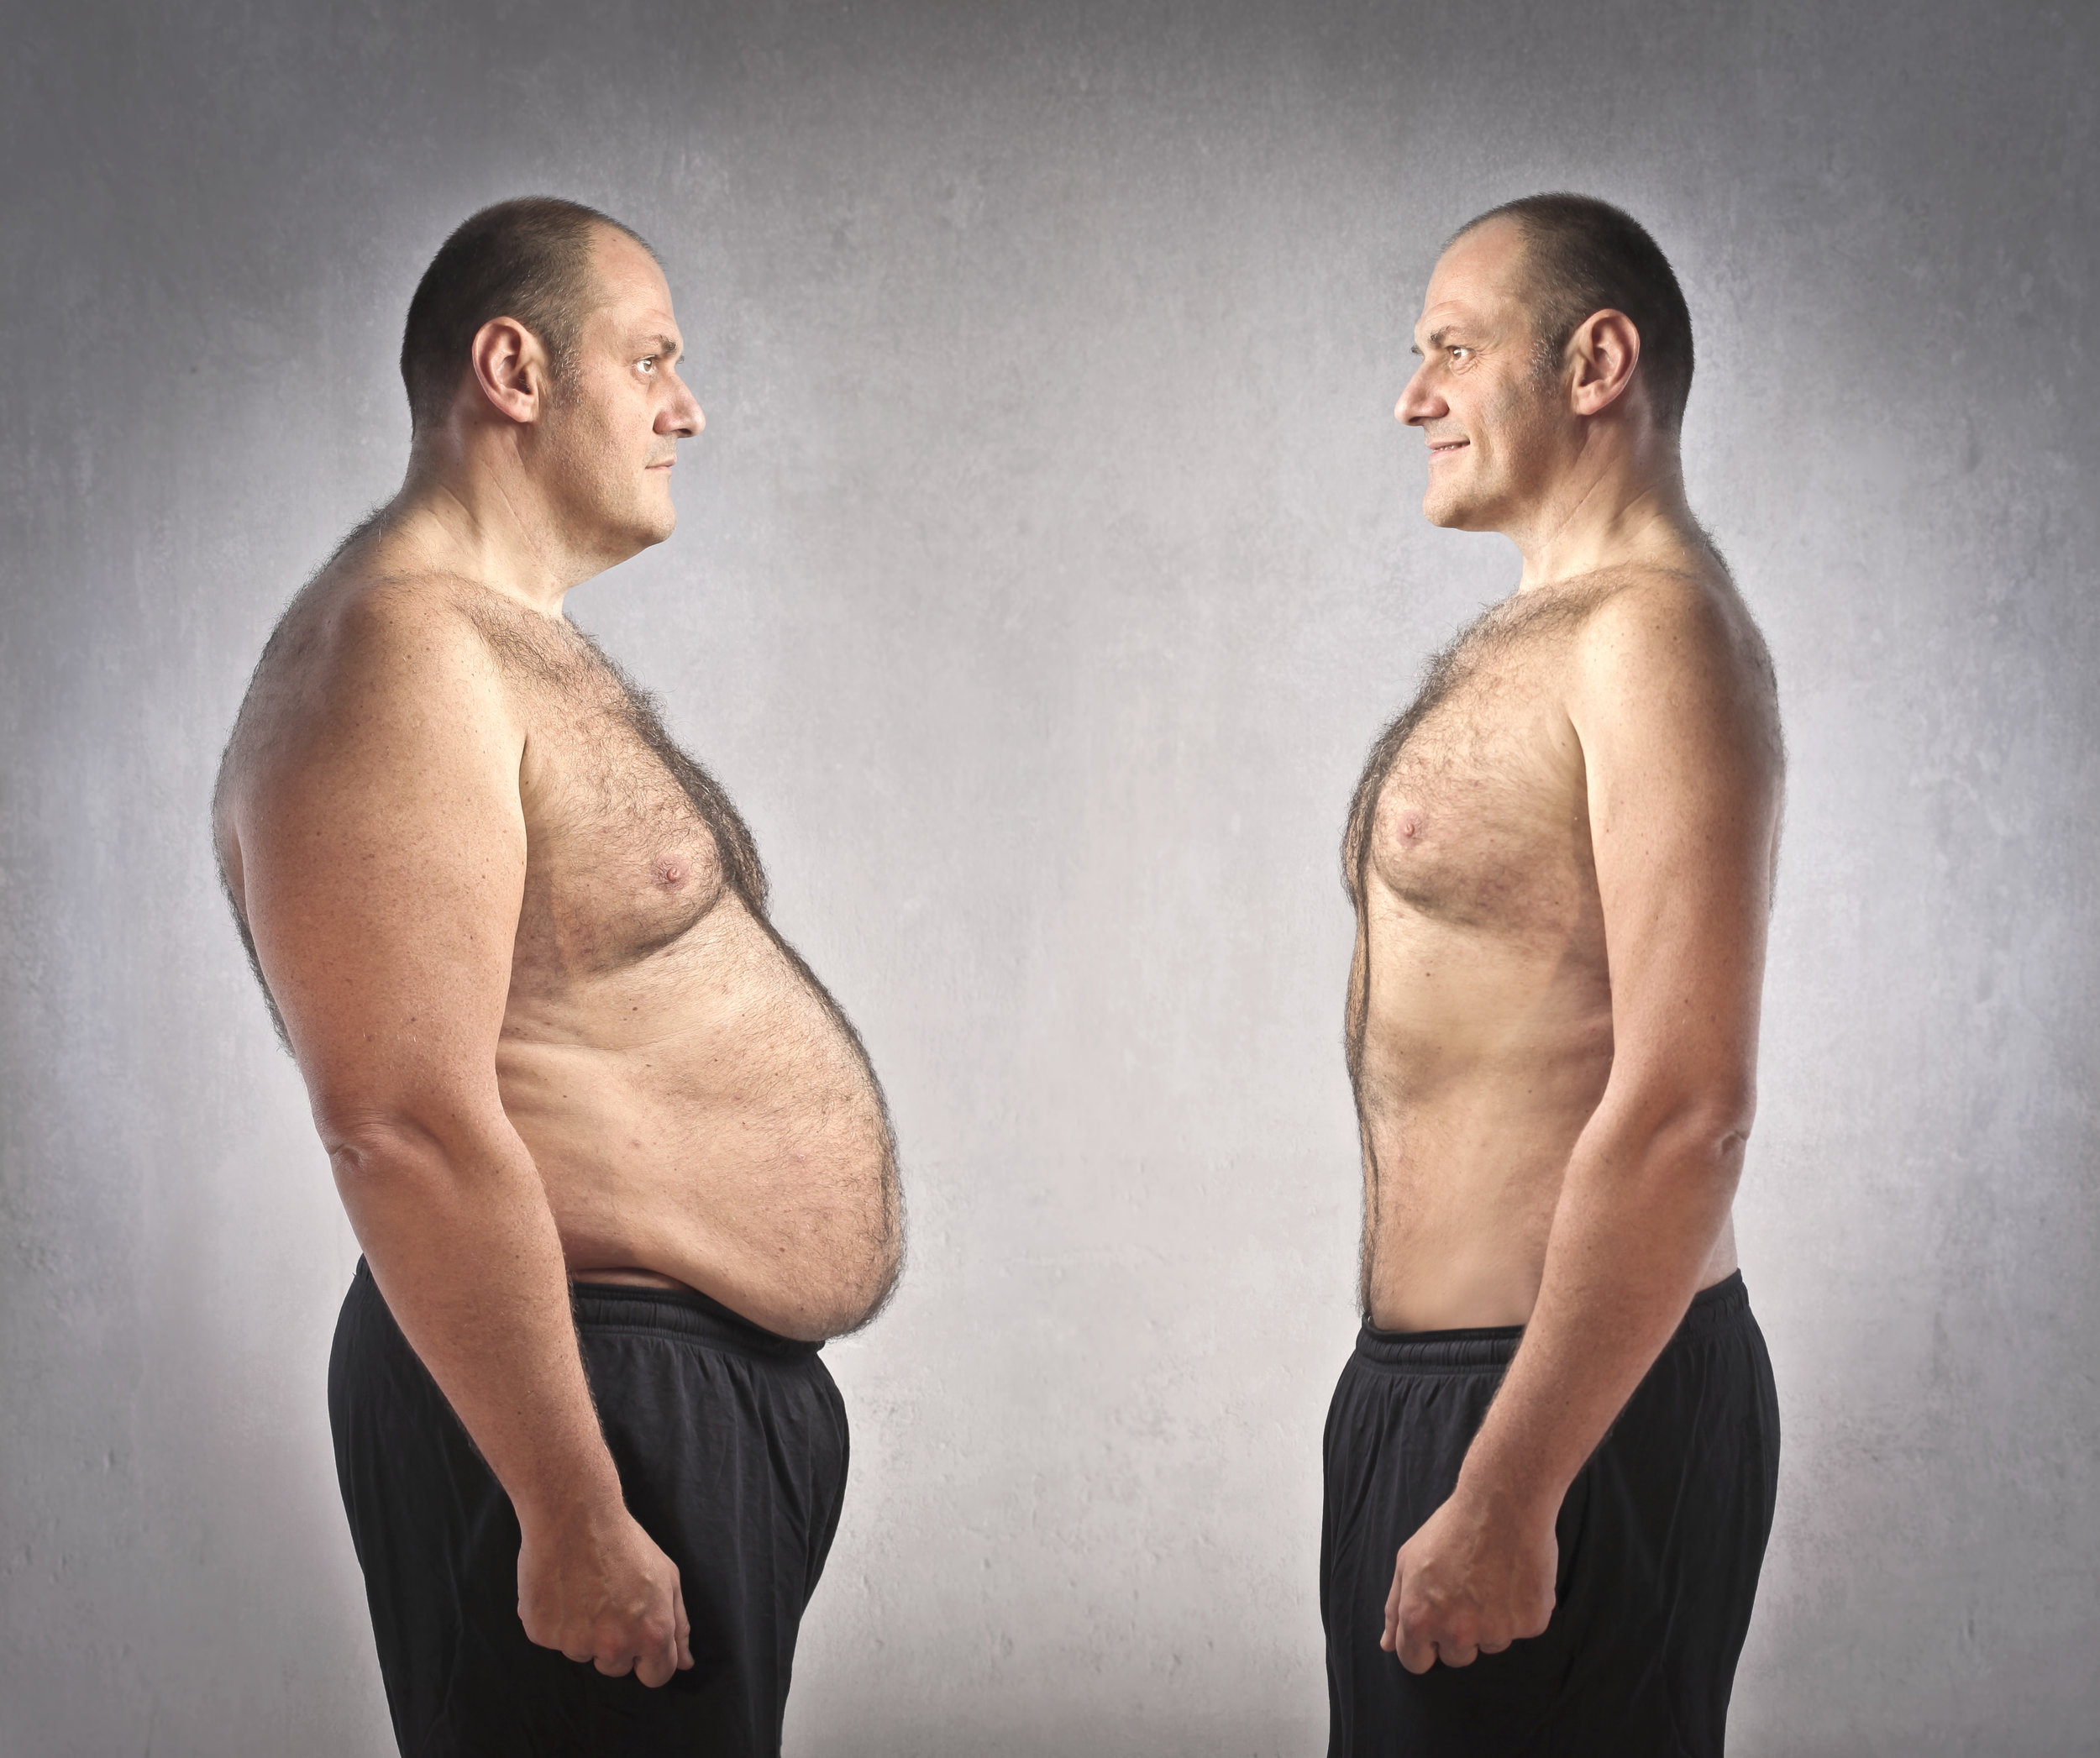 Obese and Fit person comparatively standing side by side.